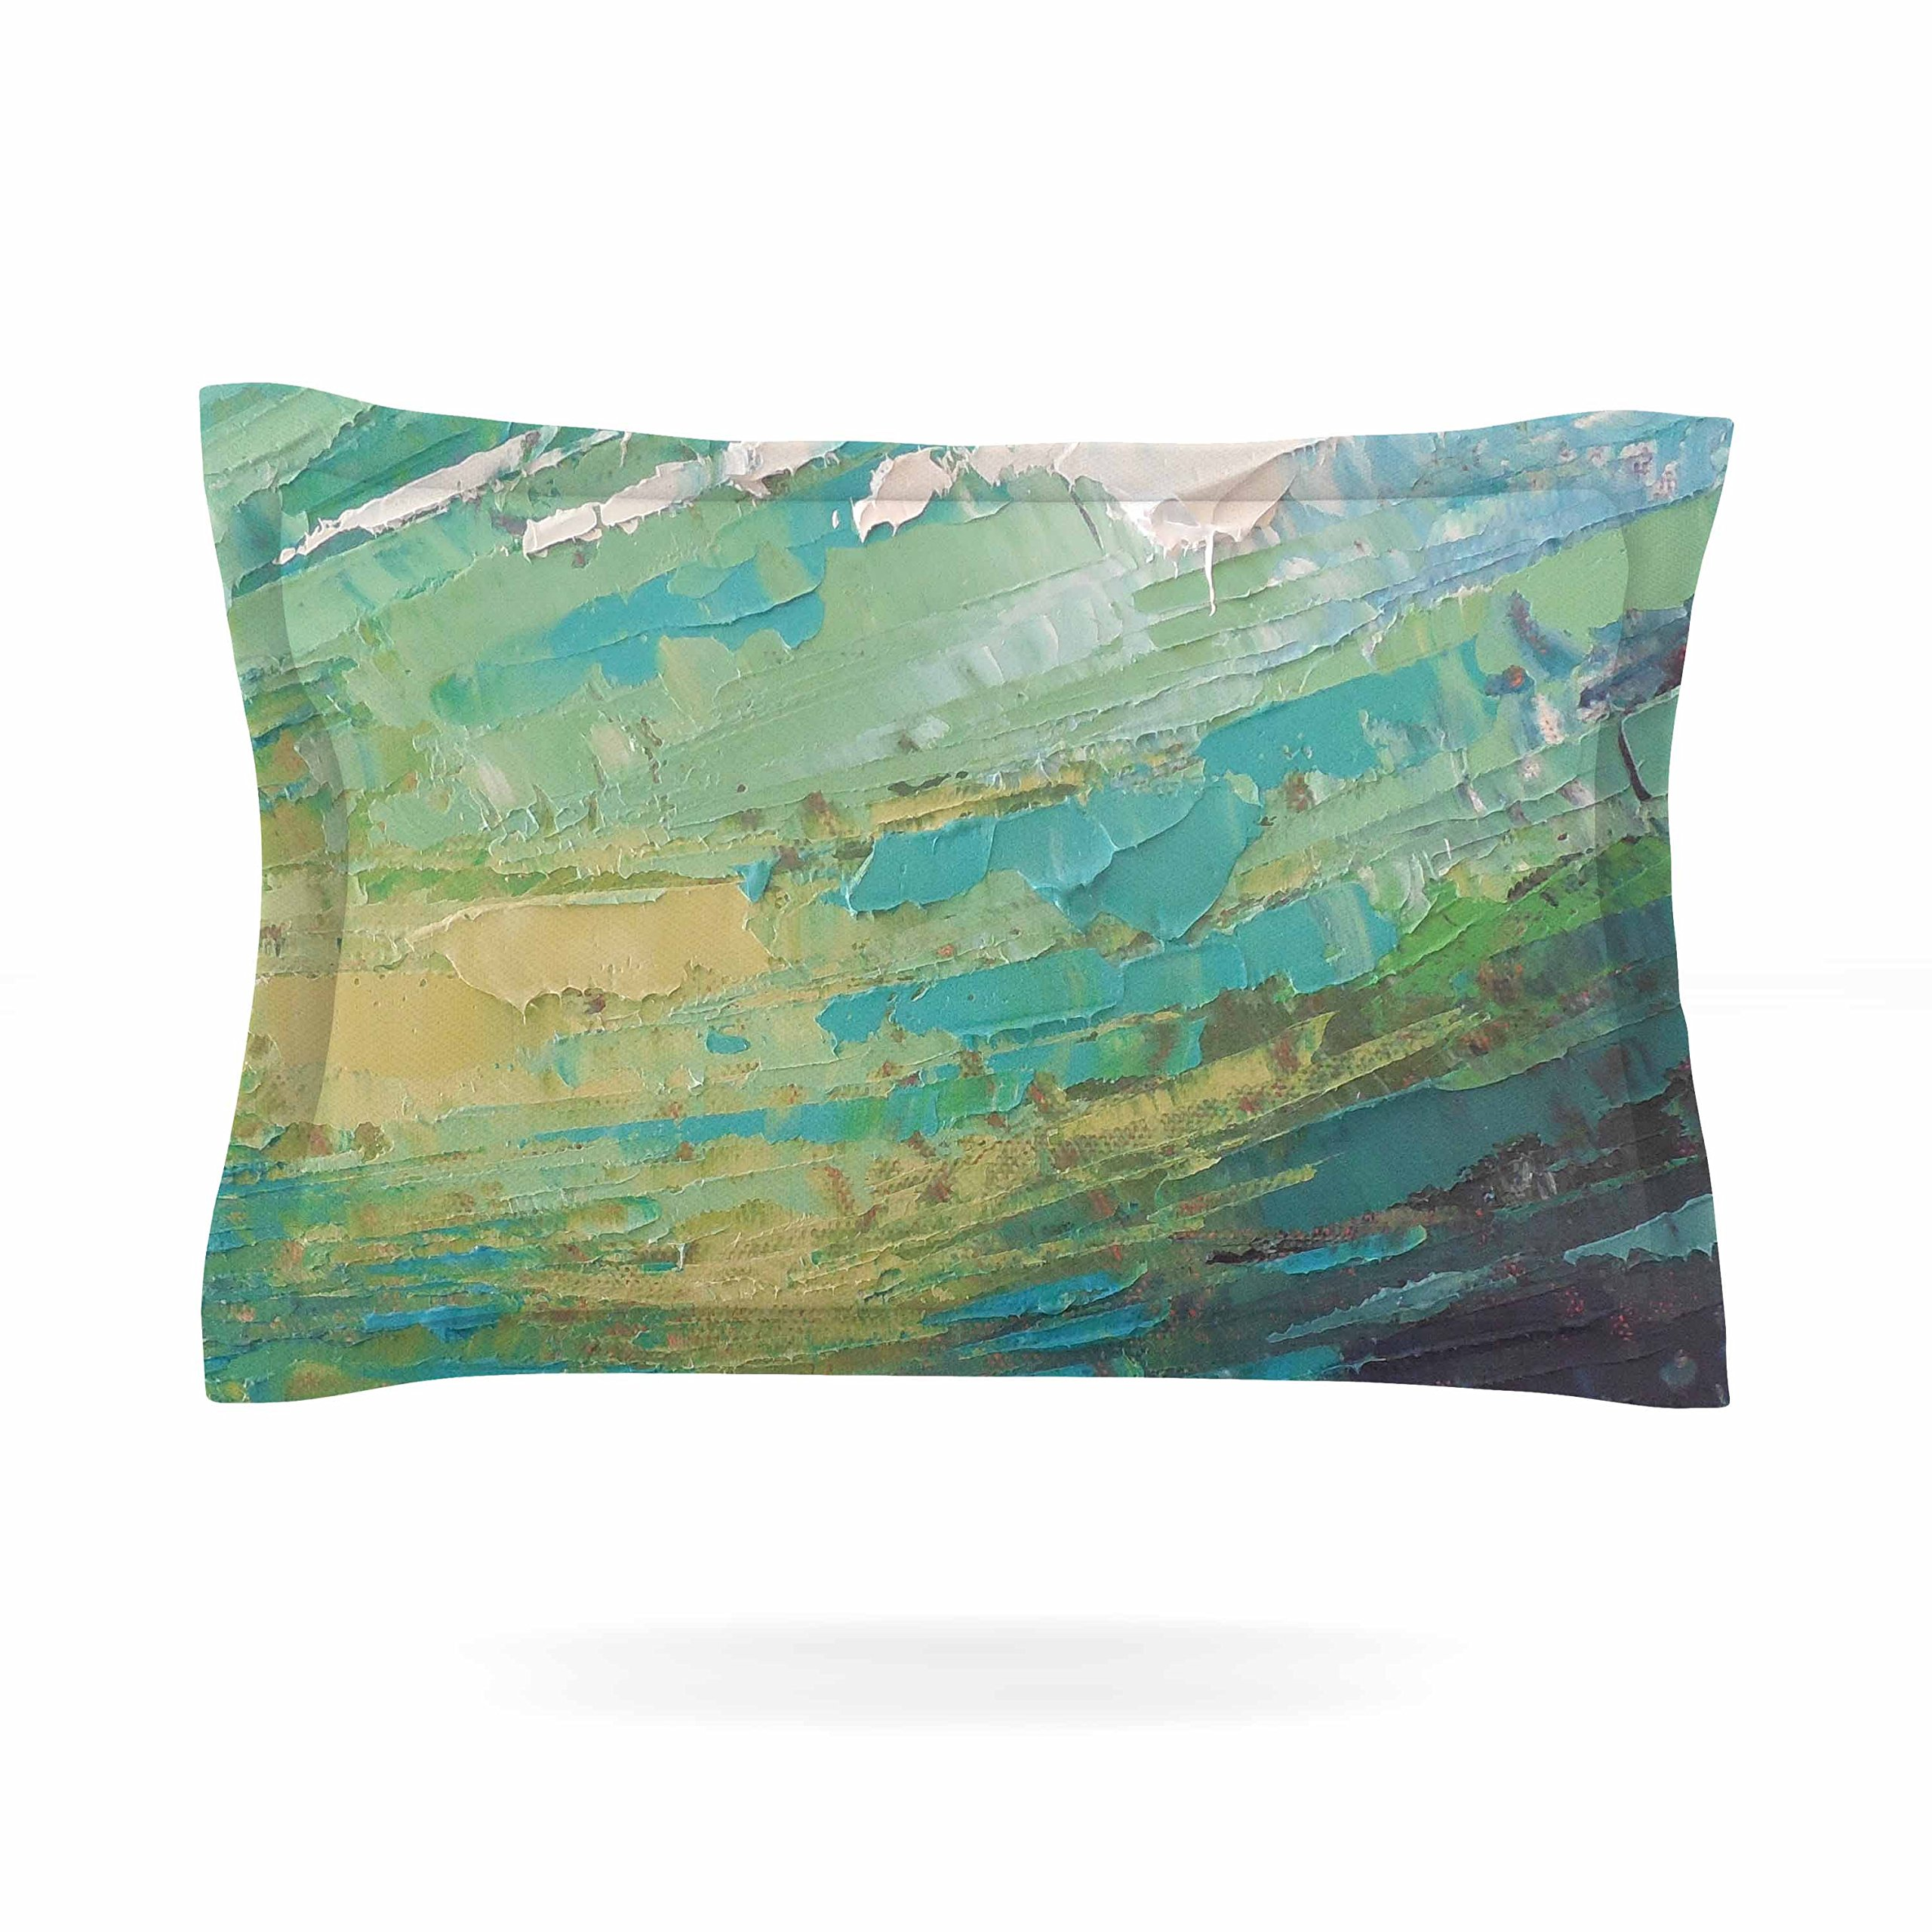 KESS InHouse Carol Schiff ''Sea Dance'' Teal Green Painting Pillow Sham, 40'' x 20''